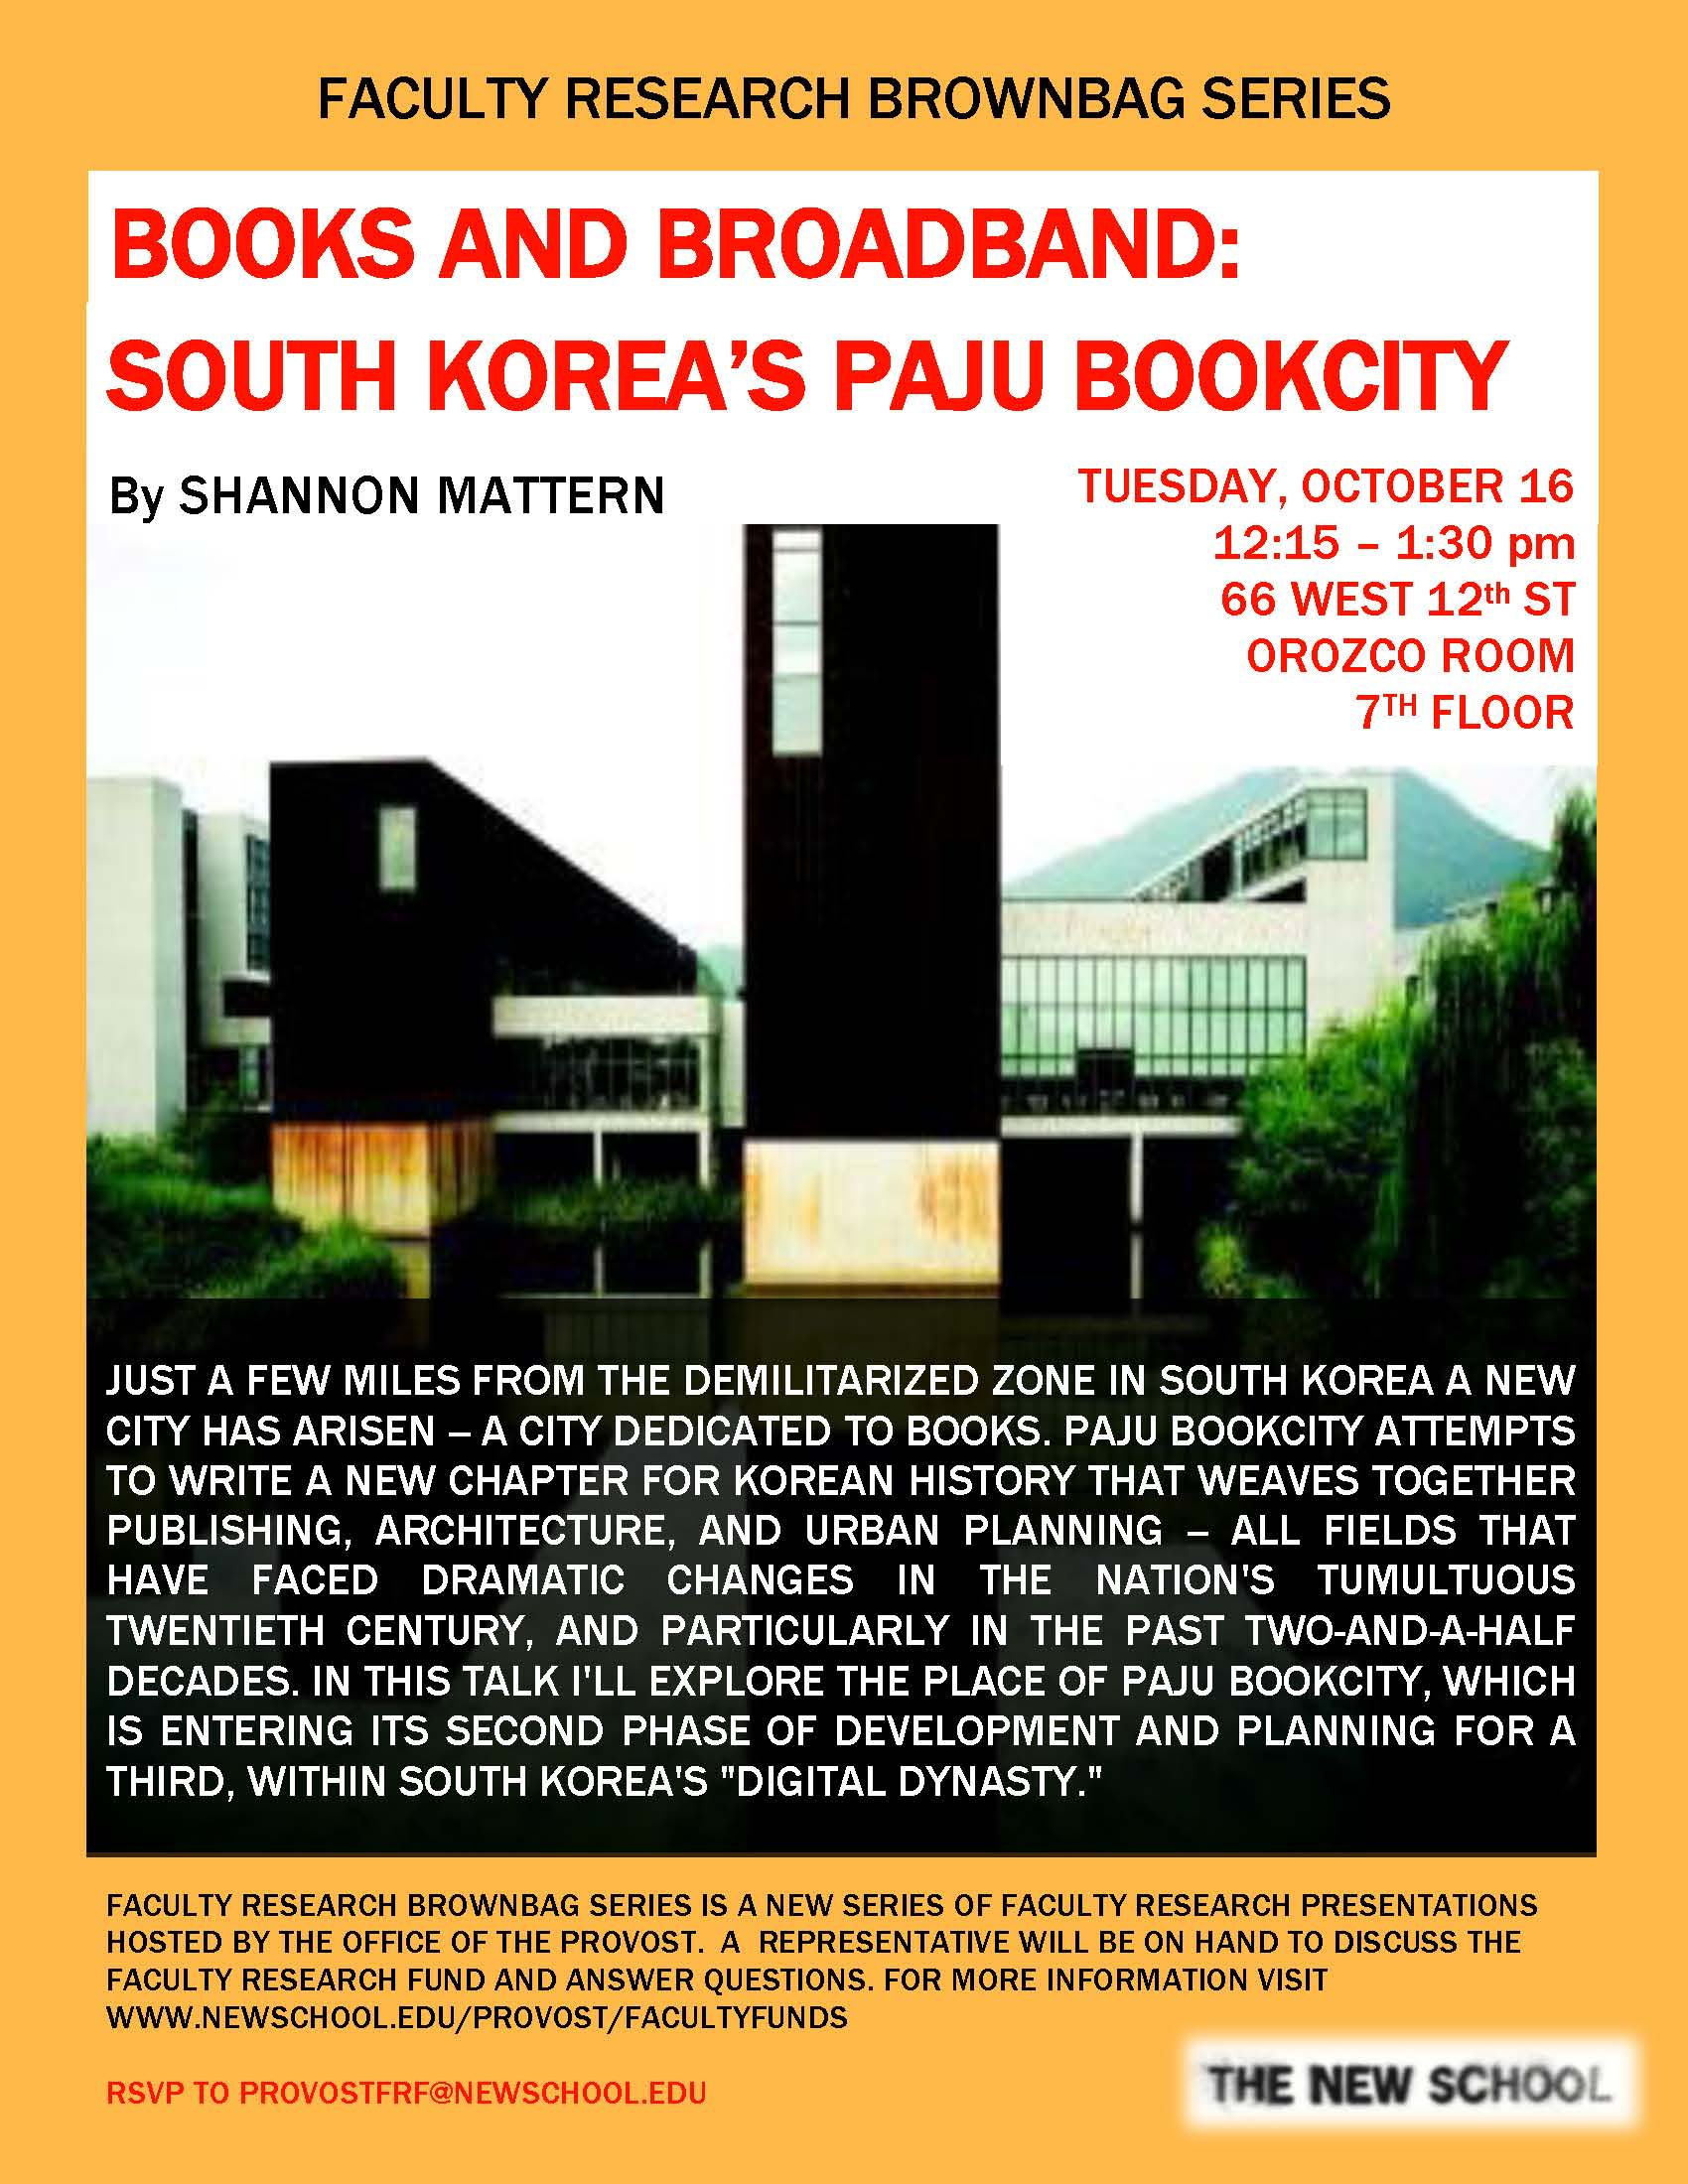 Books to Broadband: South Korea's Paju Bookcity (2012